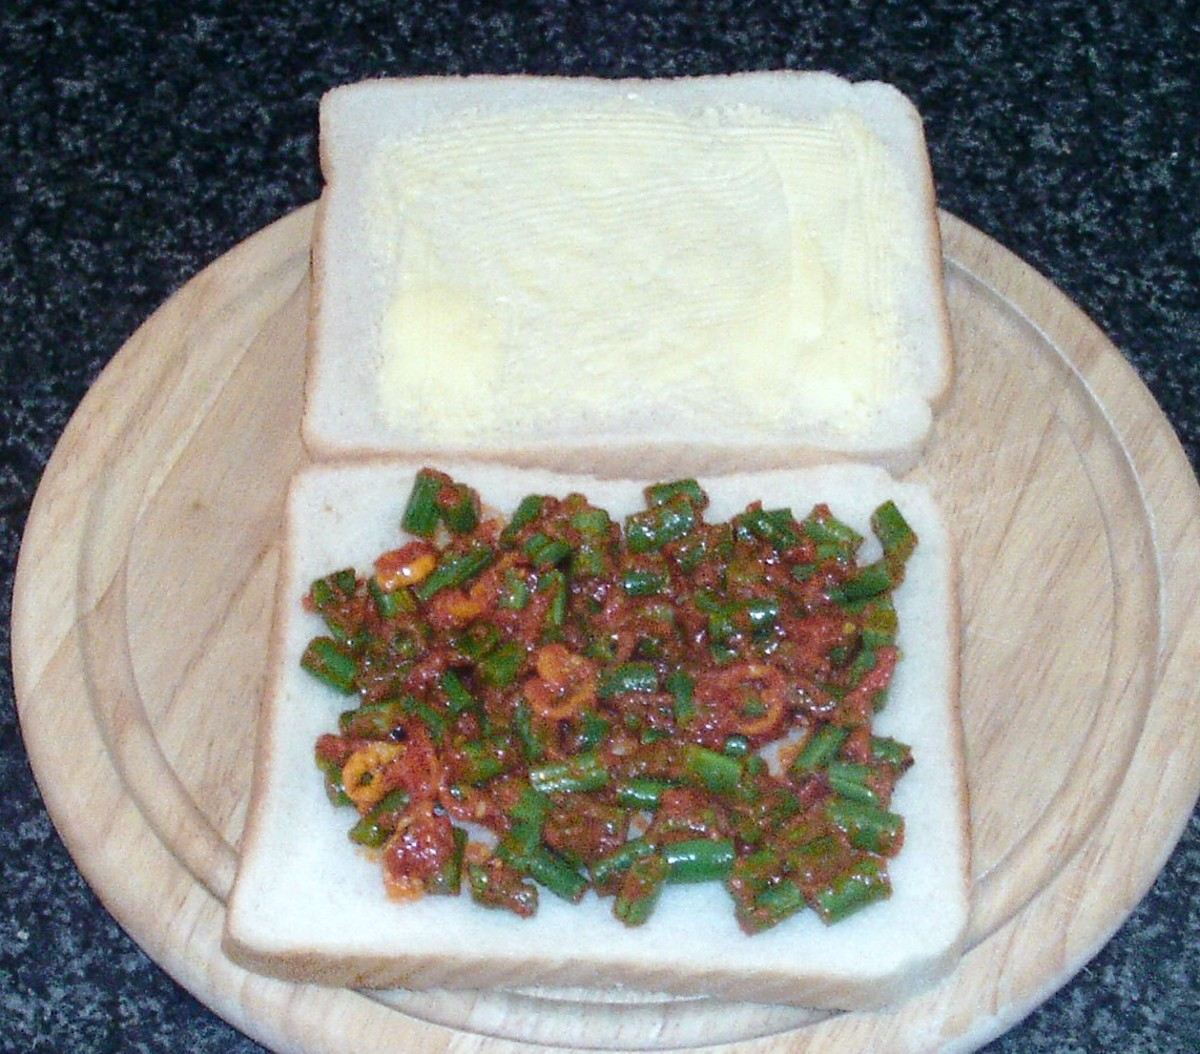 Spicy beans are spread on first slice of bread